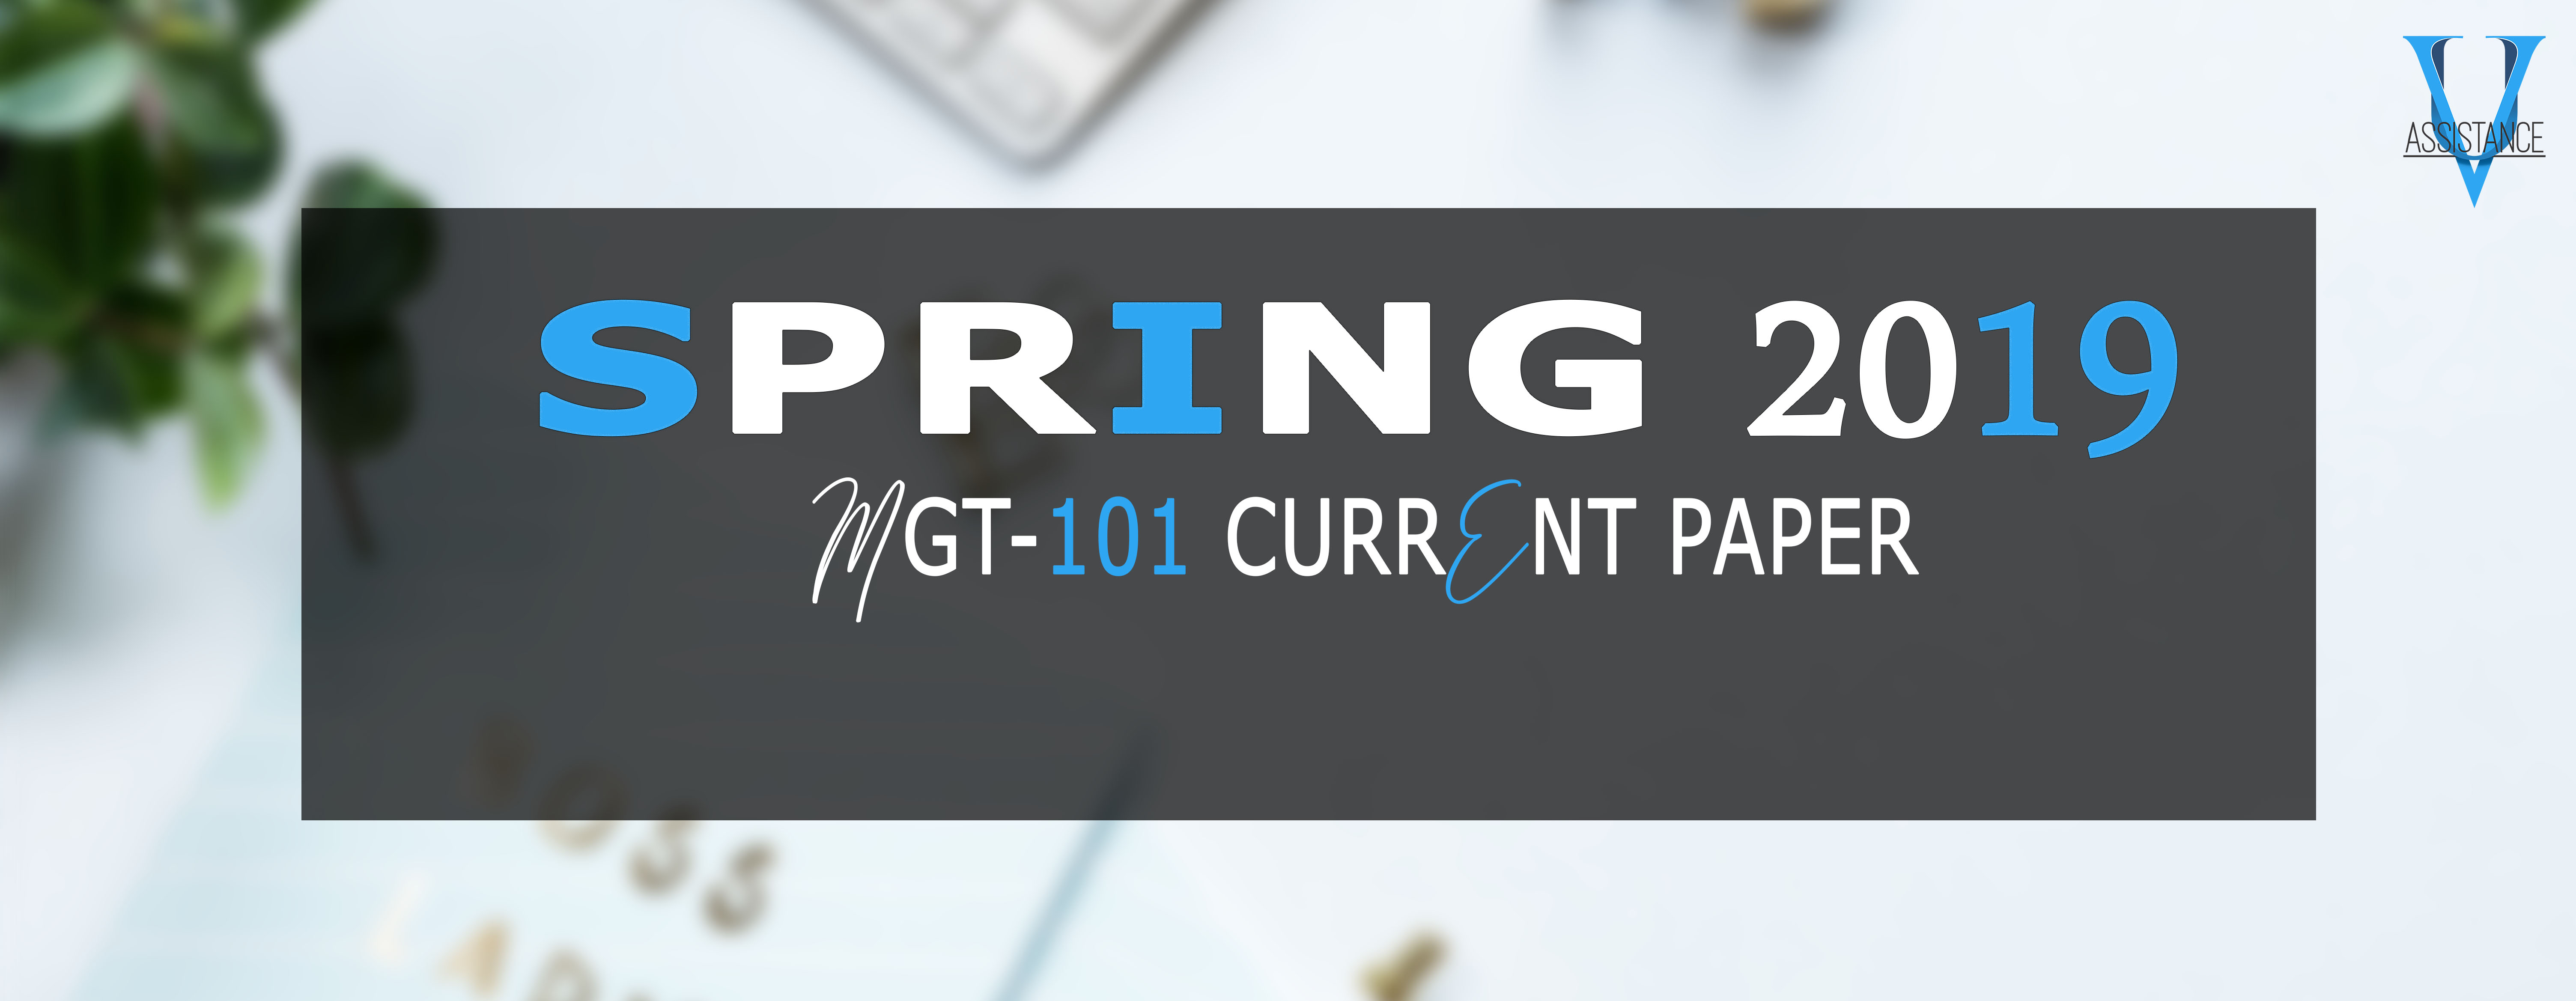 MGT101 Current Paper Spring 2019